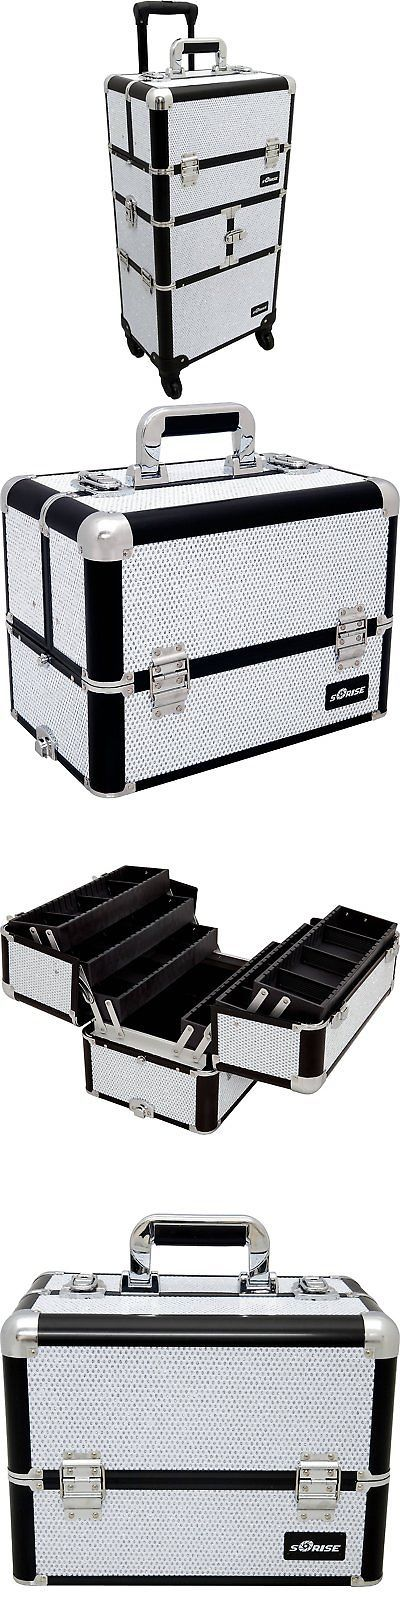 Rolling Makeup Cases: Sunrise I3464 Professional 2-In-1 Rolling Makeup Artist Cosmetic Train Case -> BUY IT NOW ONLY: $217.23 on eBay!